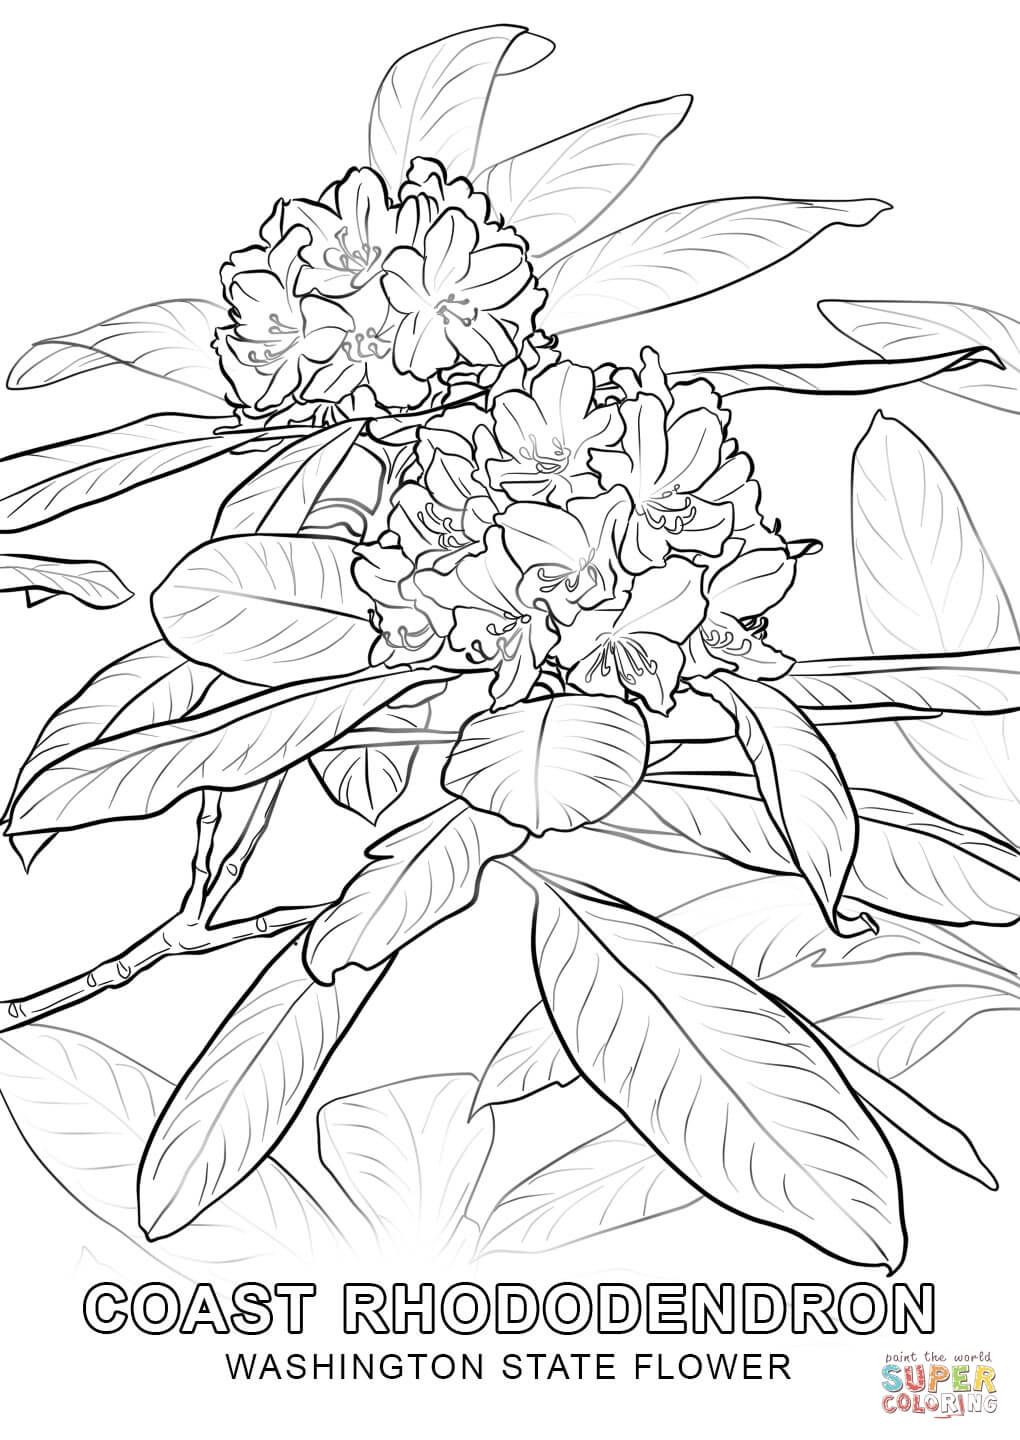 Washington State Flower Coloring Page | Free Printable Coloring Pages